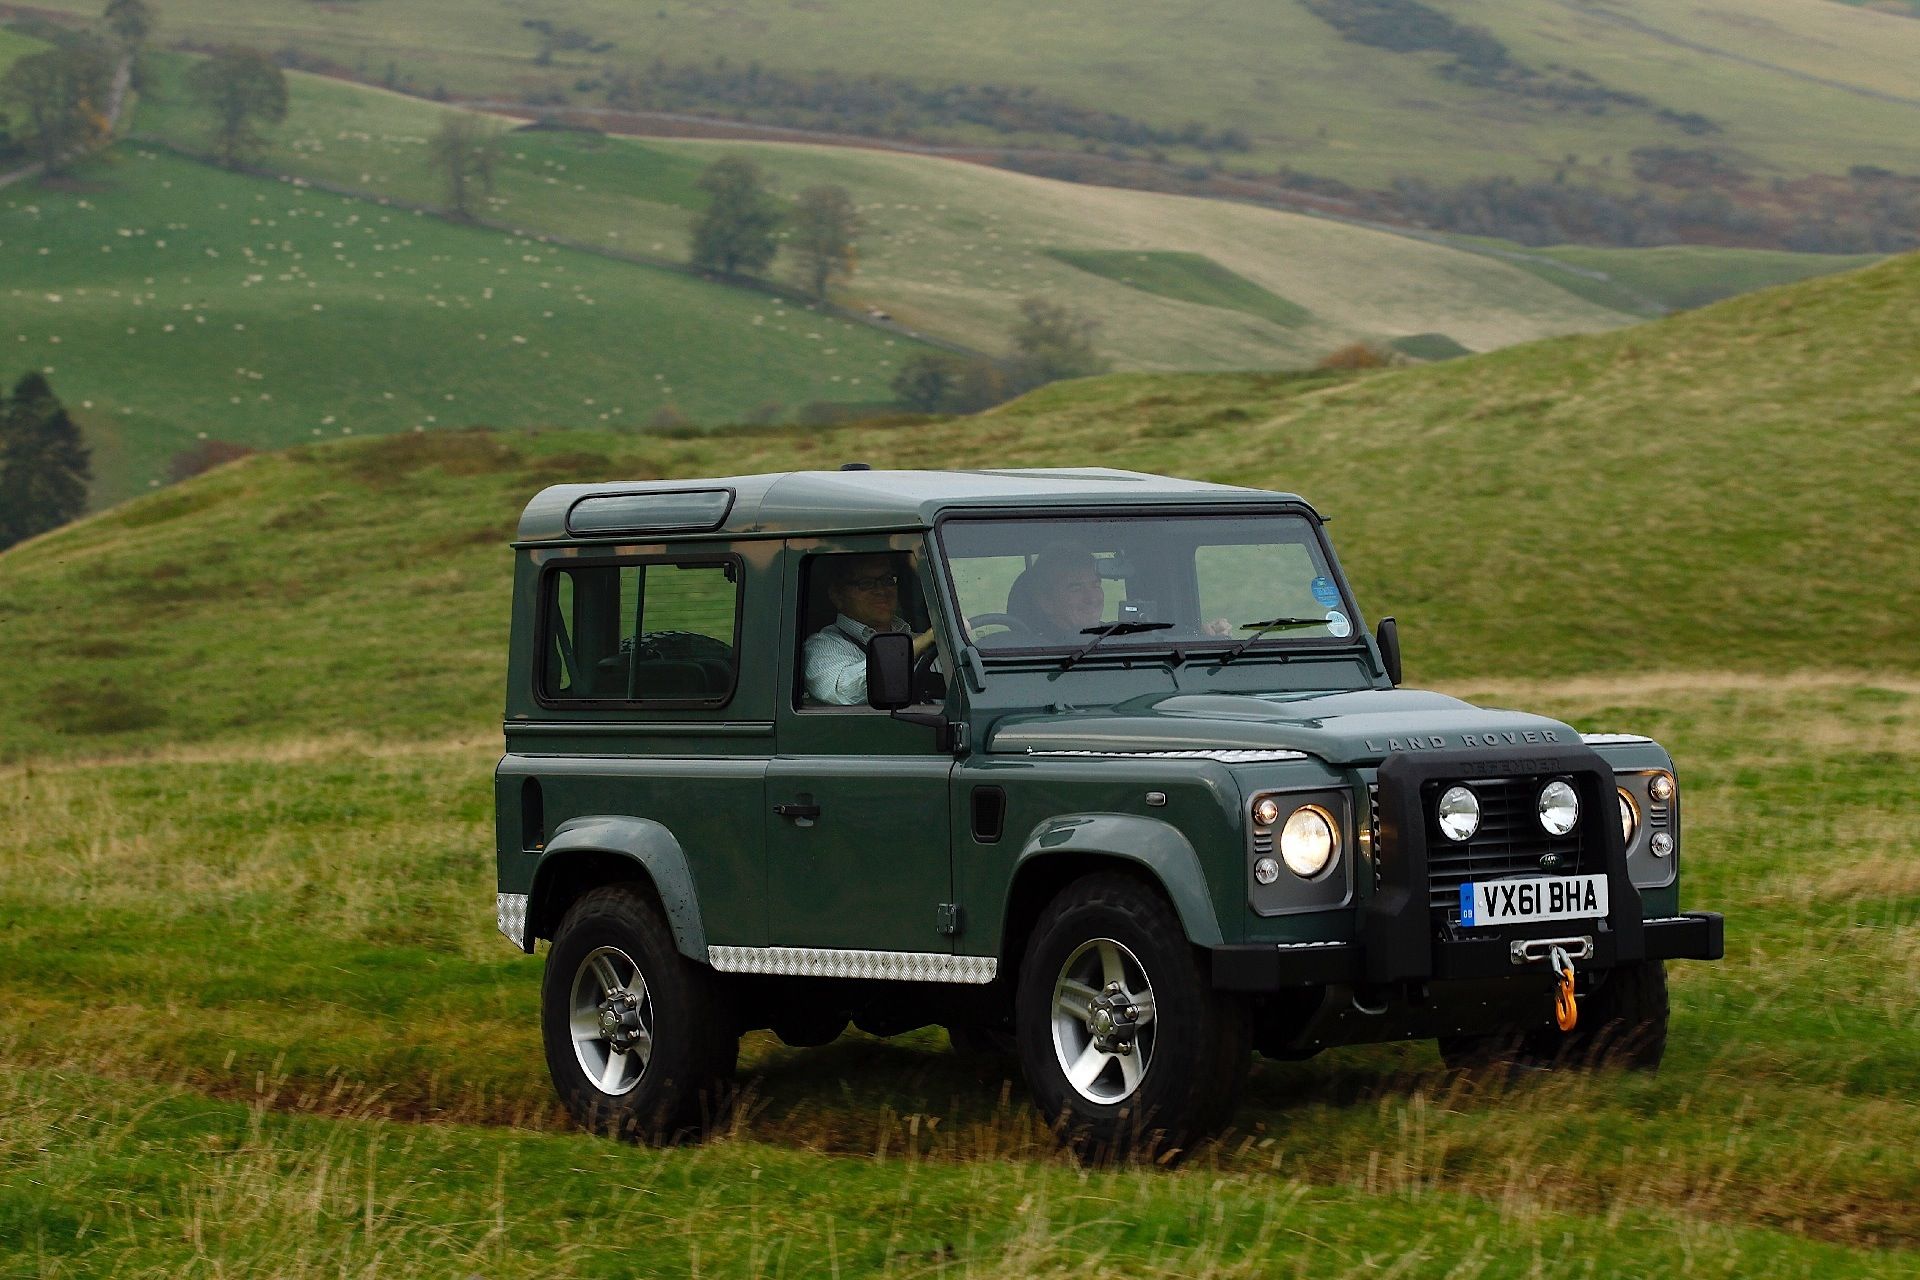 LAND ROVER Defender 90 specs - 2012, 2013, 2014, 2015, 2016 - autoevolution